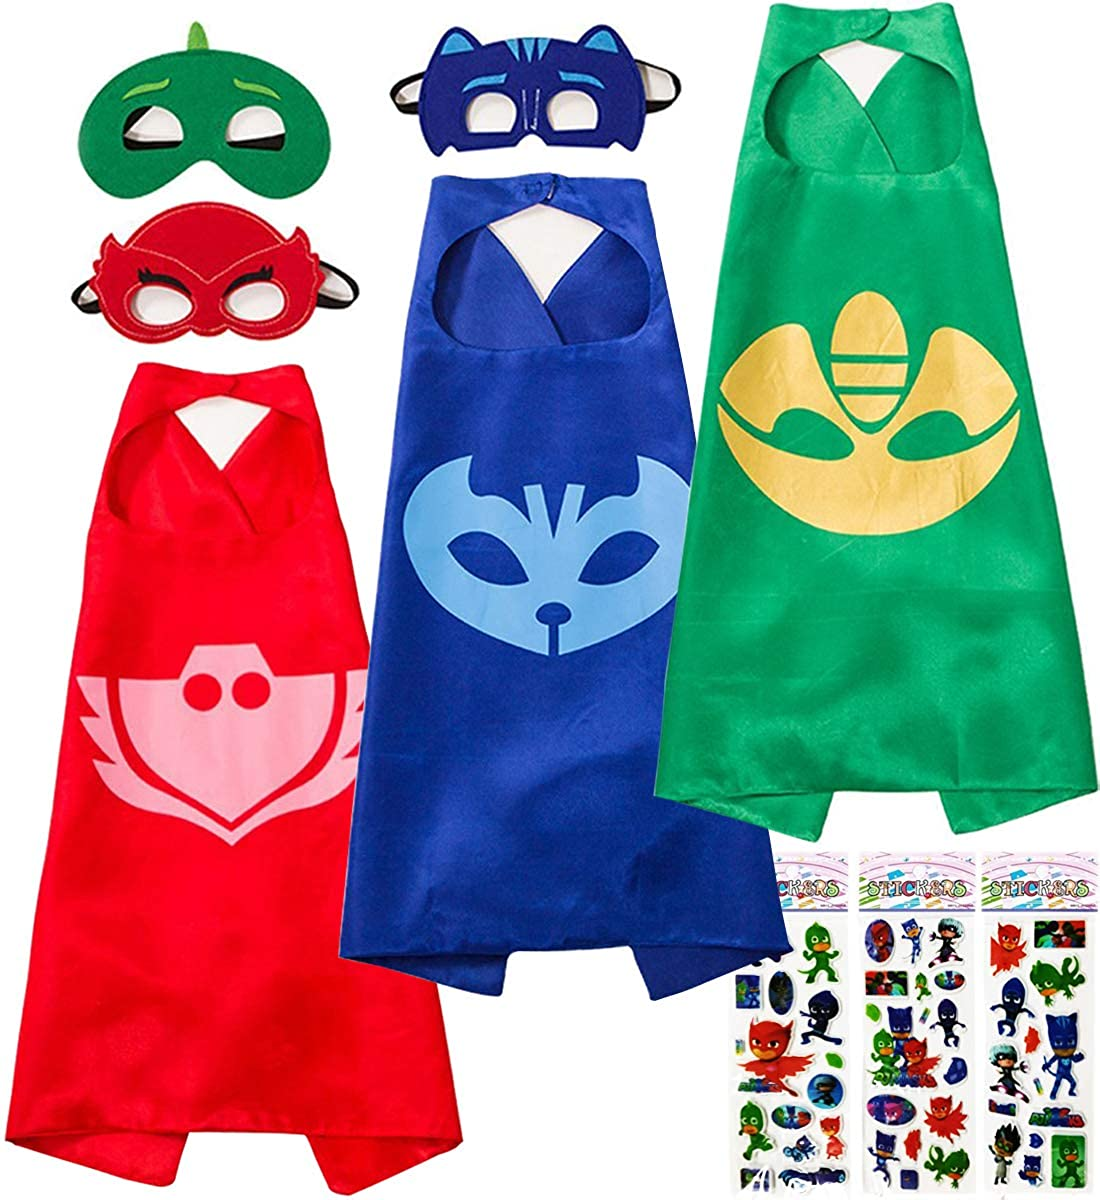 Creacty Catboy Owlette Gekko Costumes and Dress up for Kids, 3 Capes and 3 Masks - Superhero Party Supplies